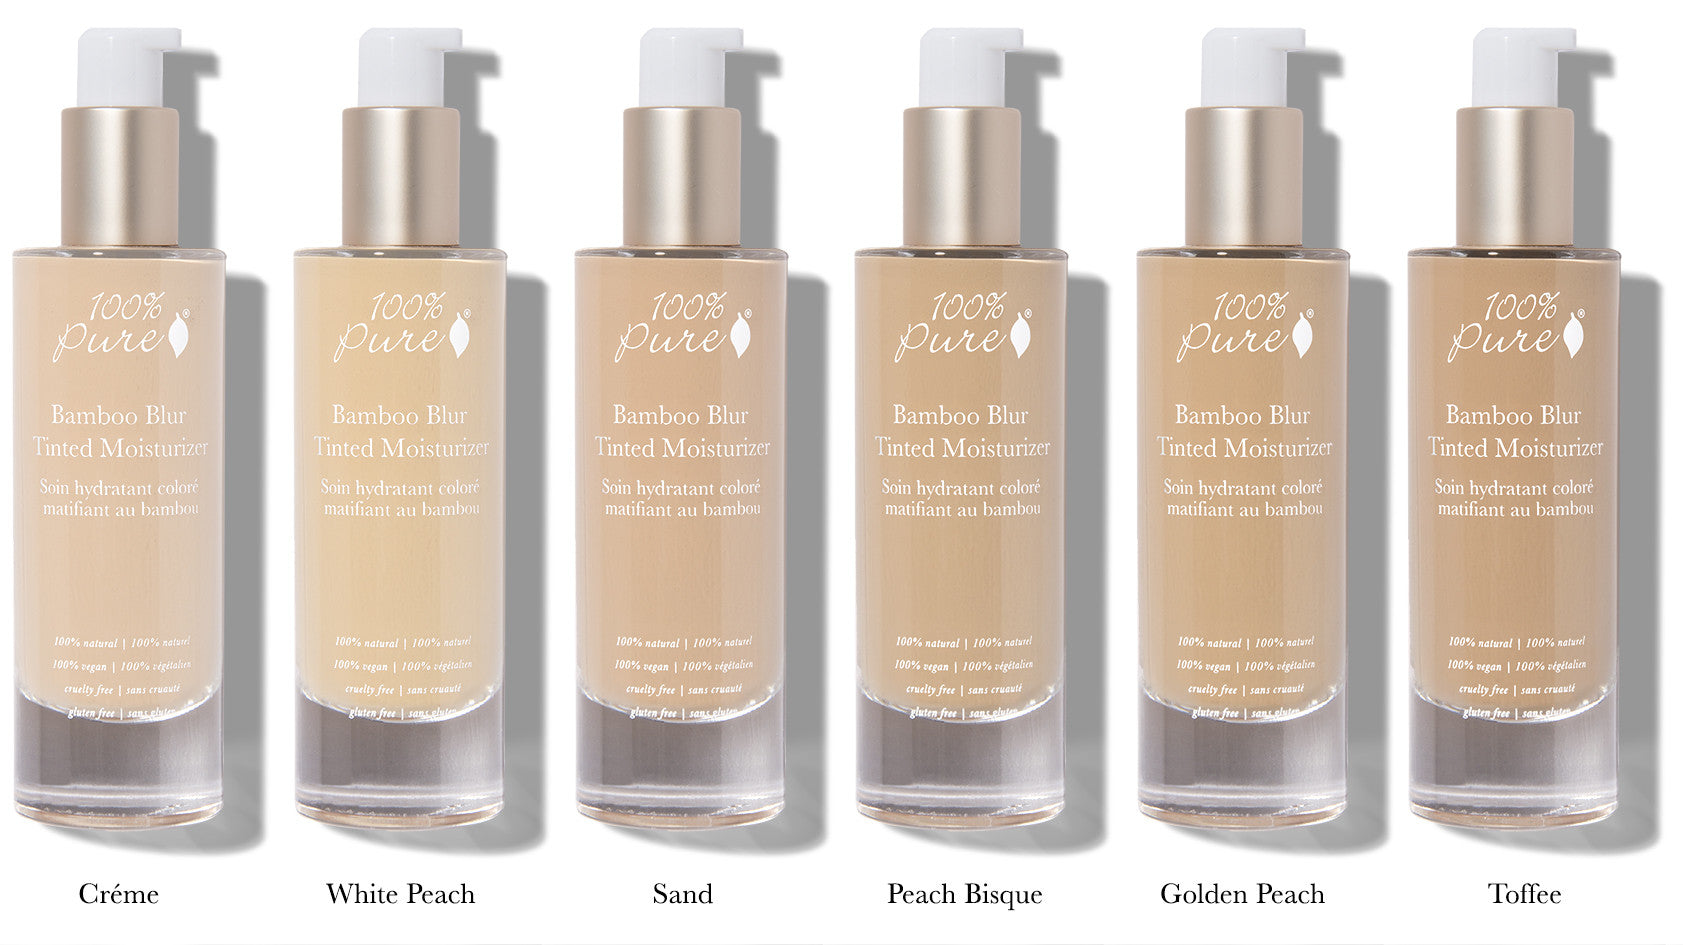 Bamboo Blur Tinted Moisturizers